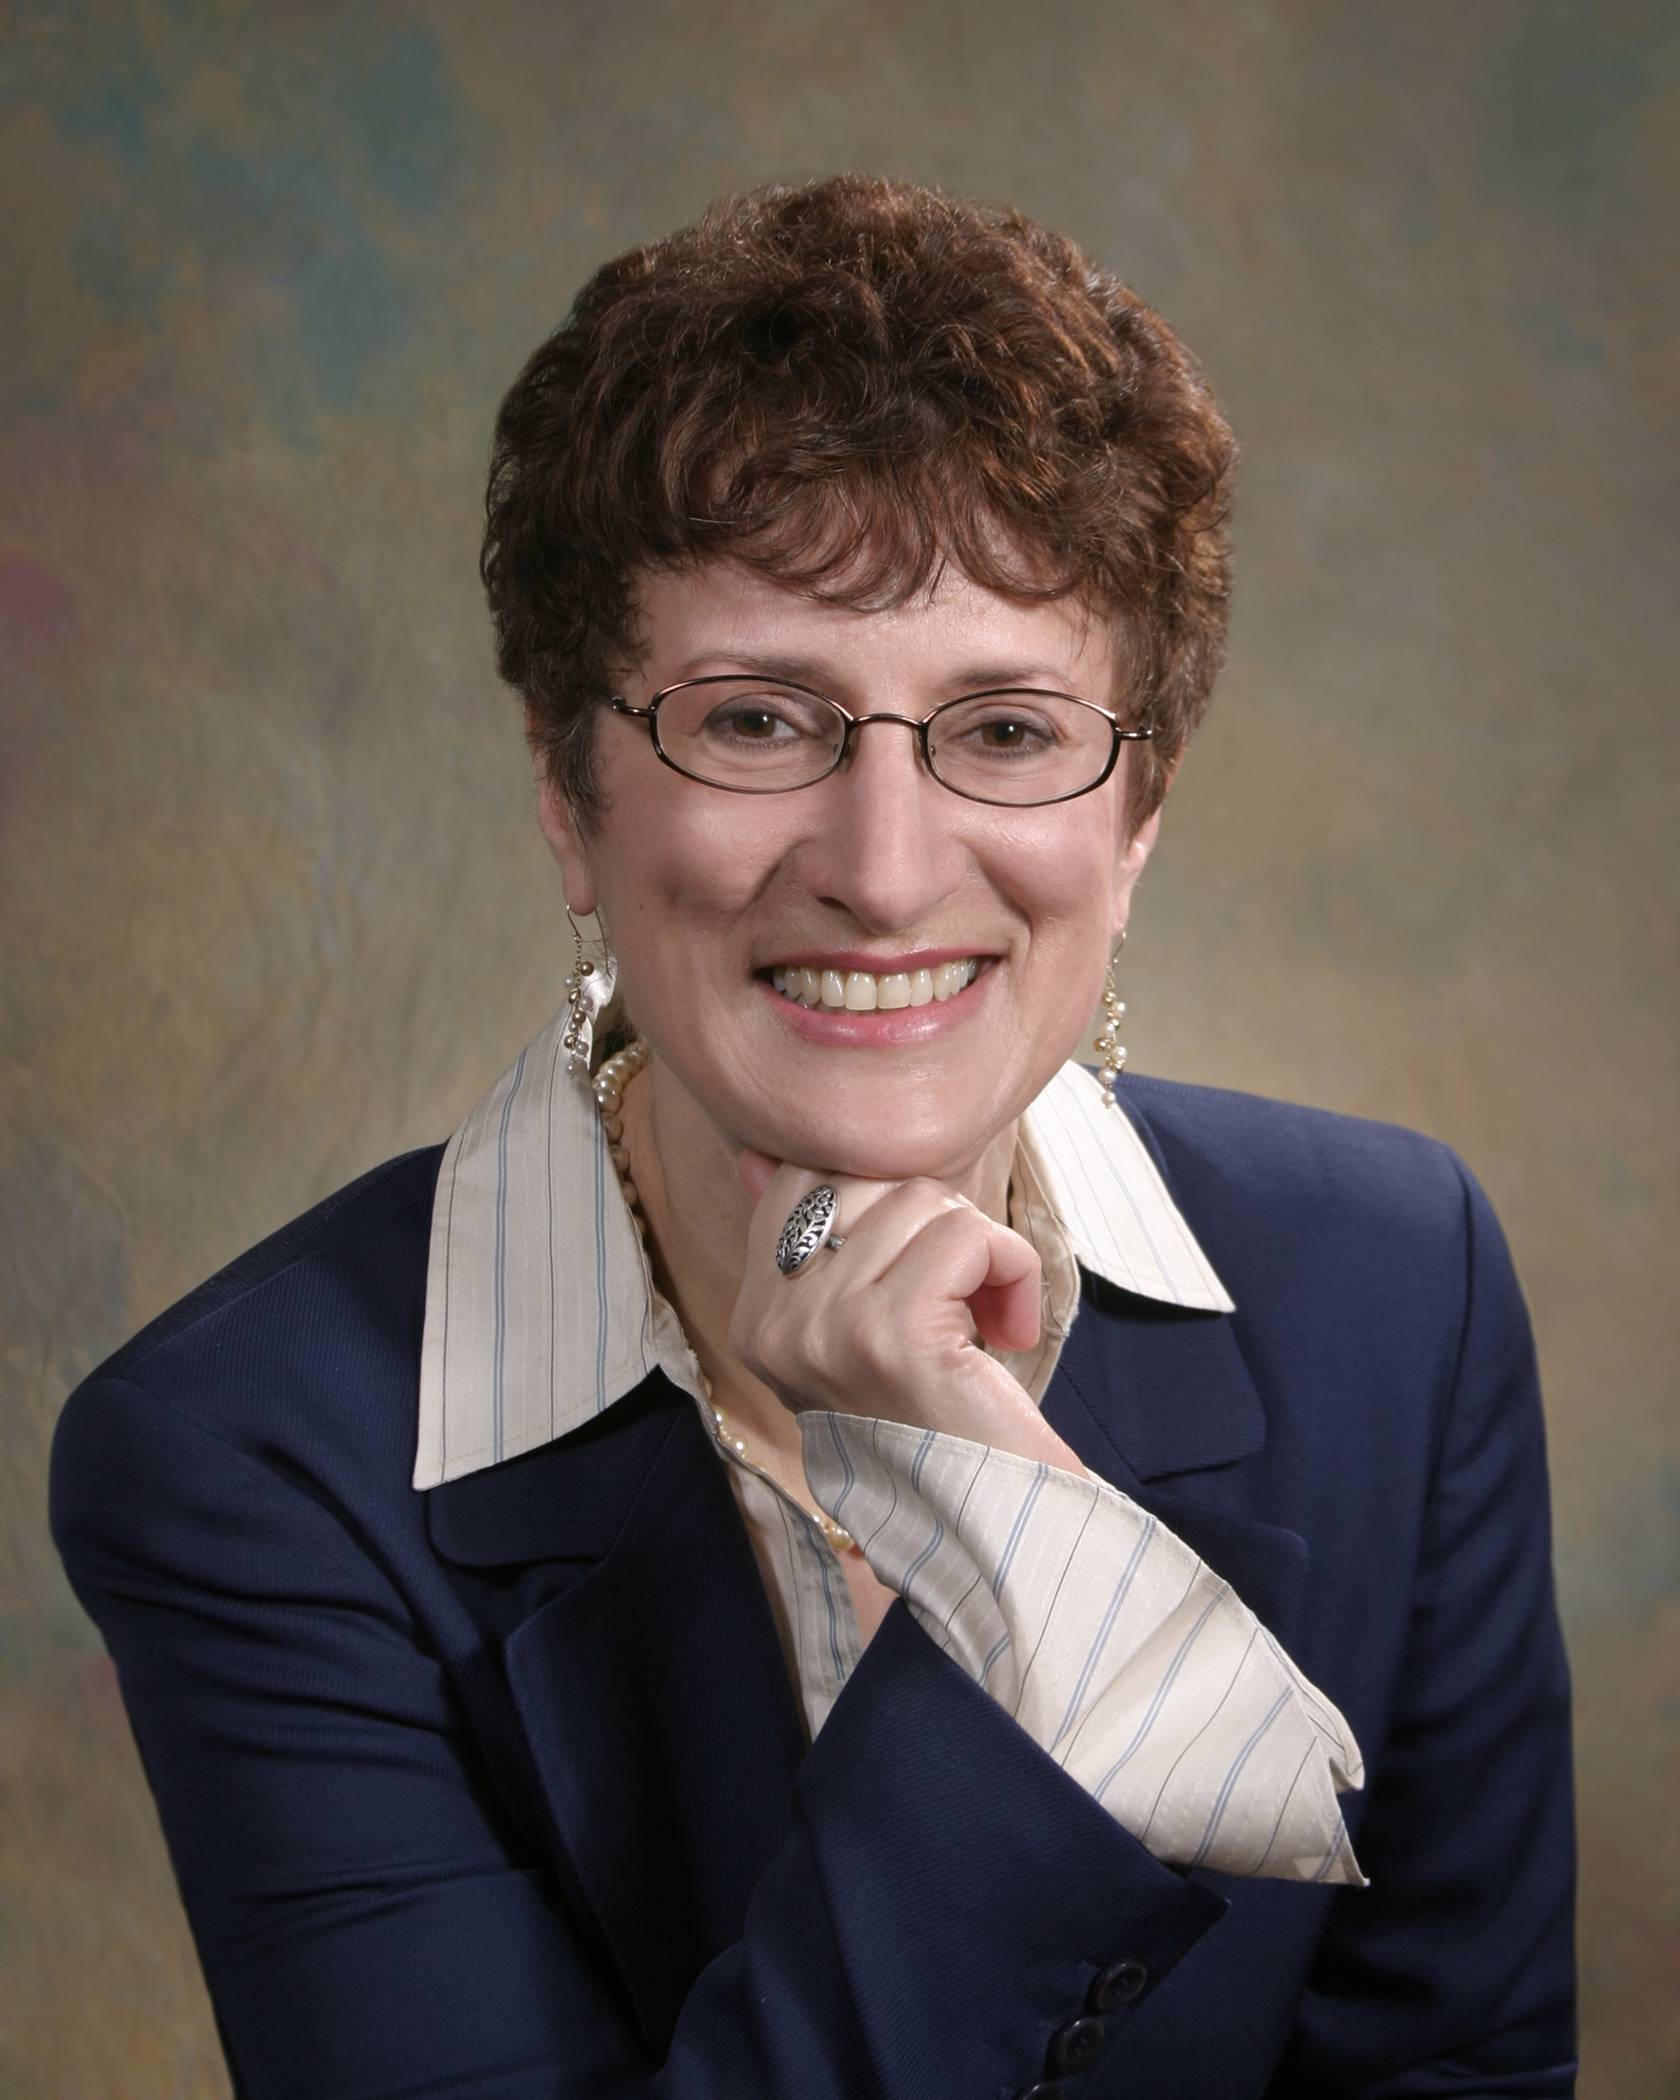 Bonnie Kunkel, running for Kane County board District 4